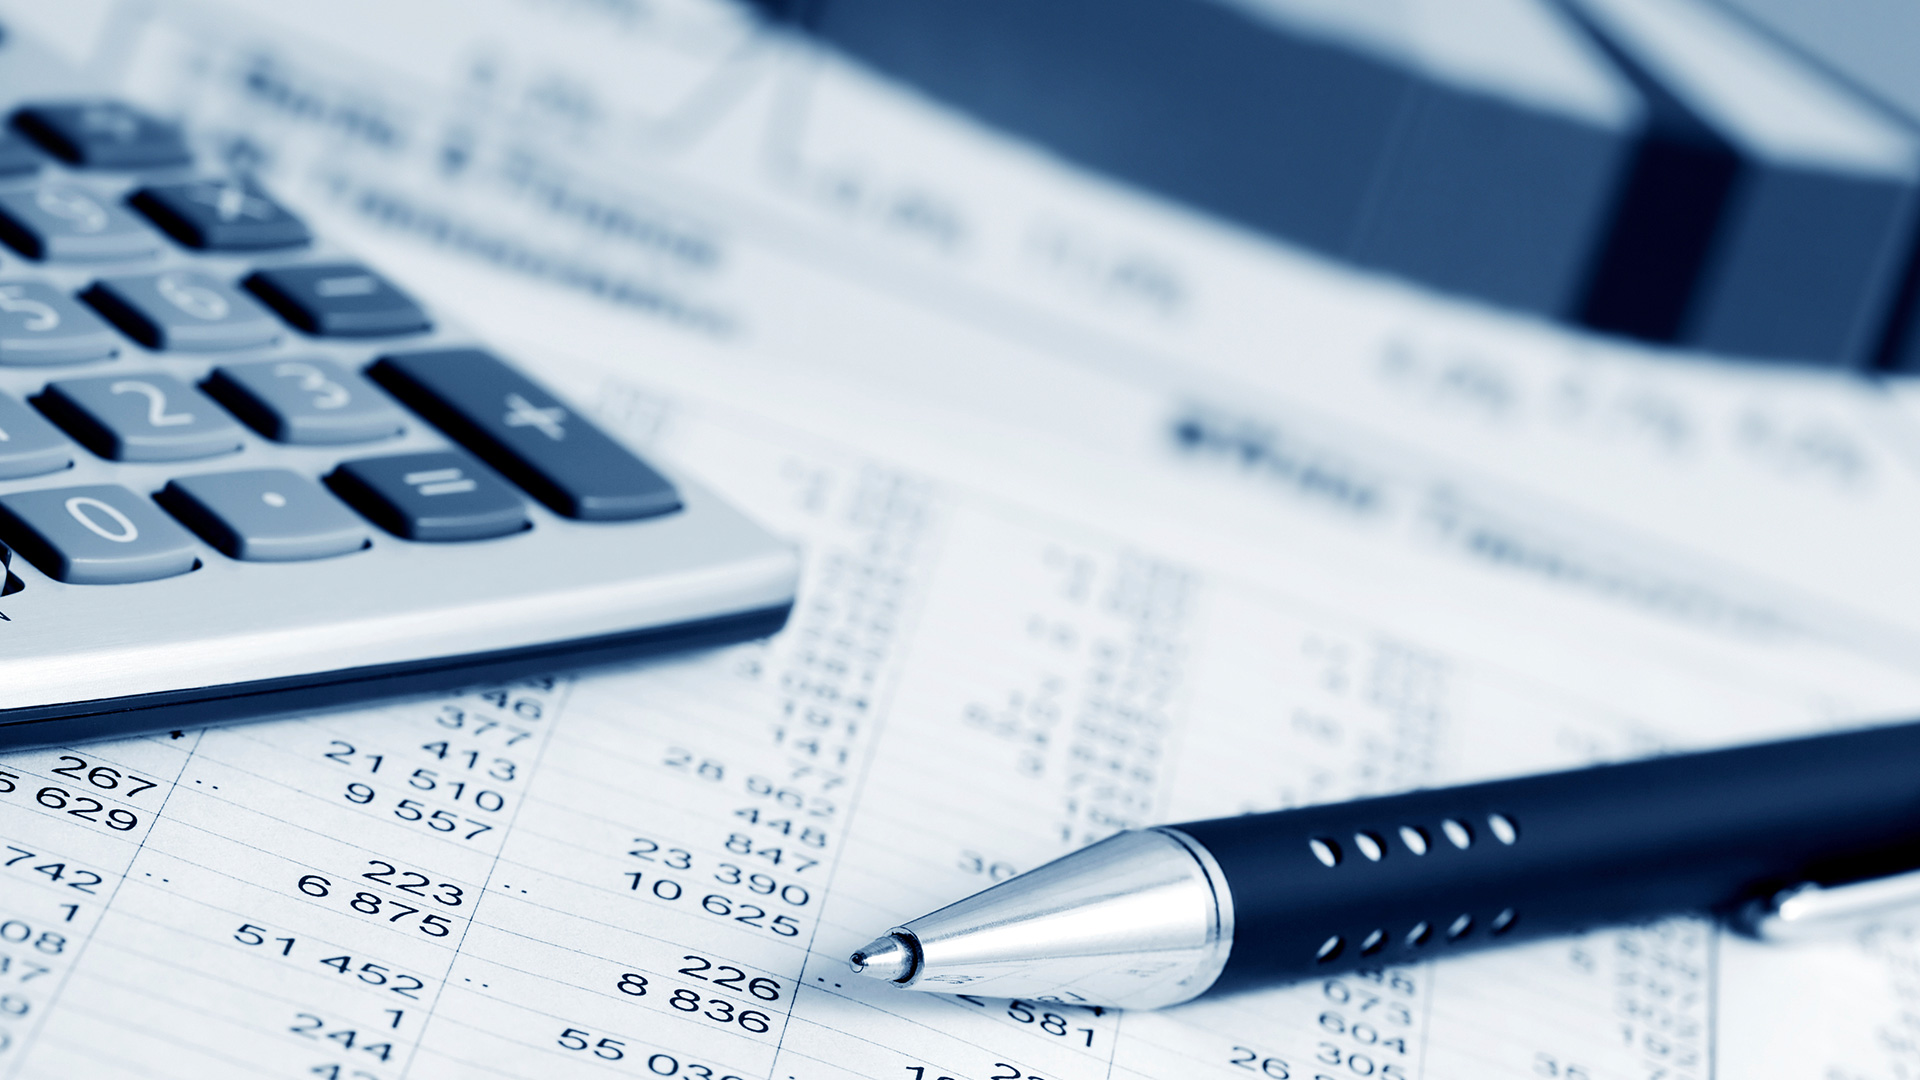 Tax Preparation Services, Business